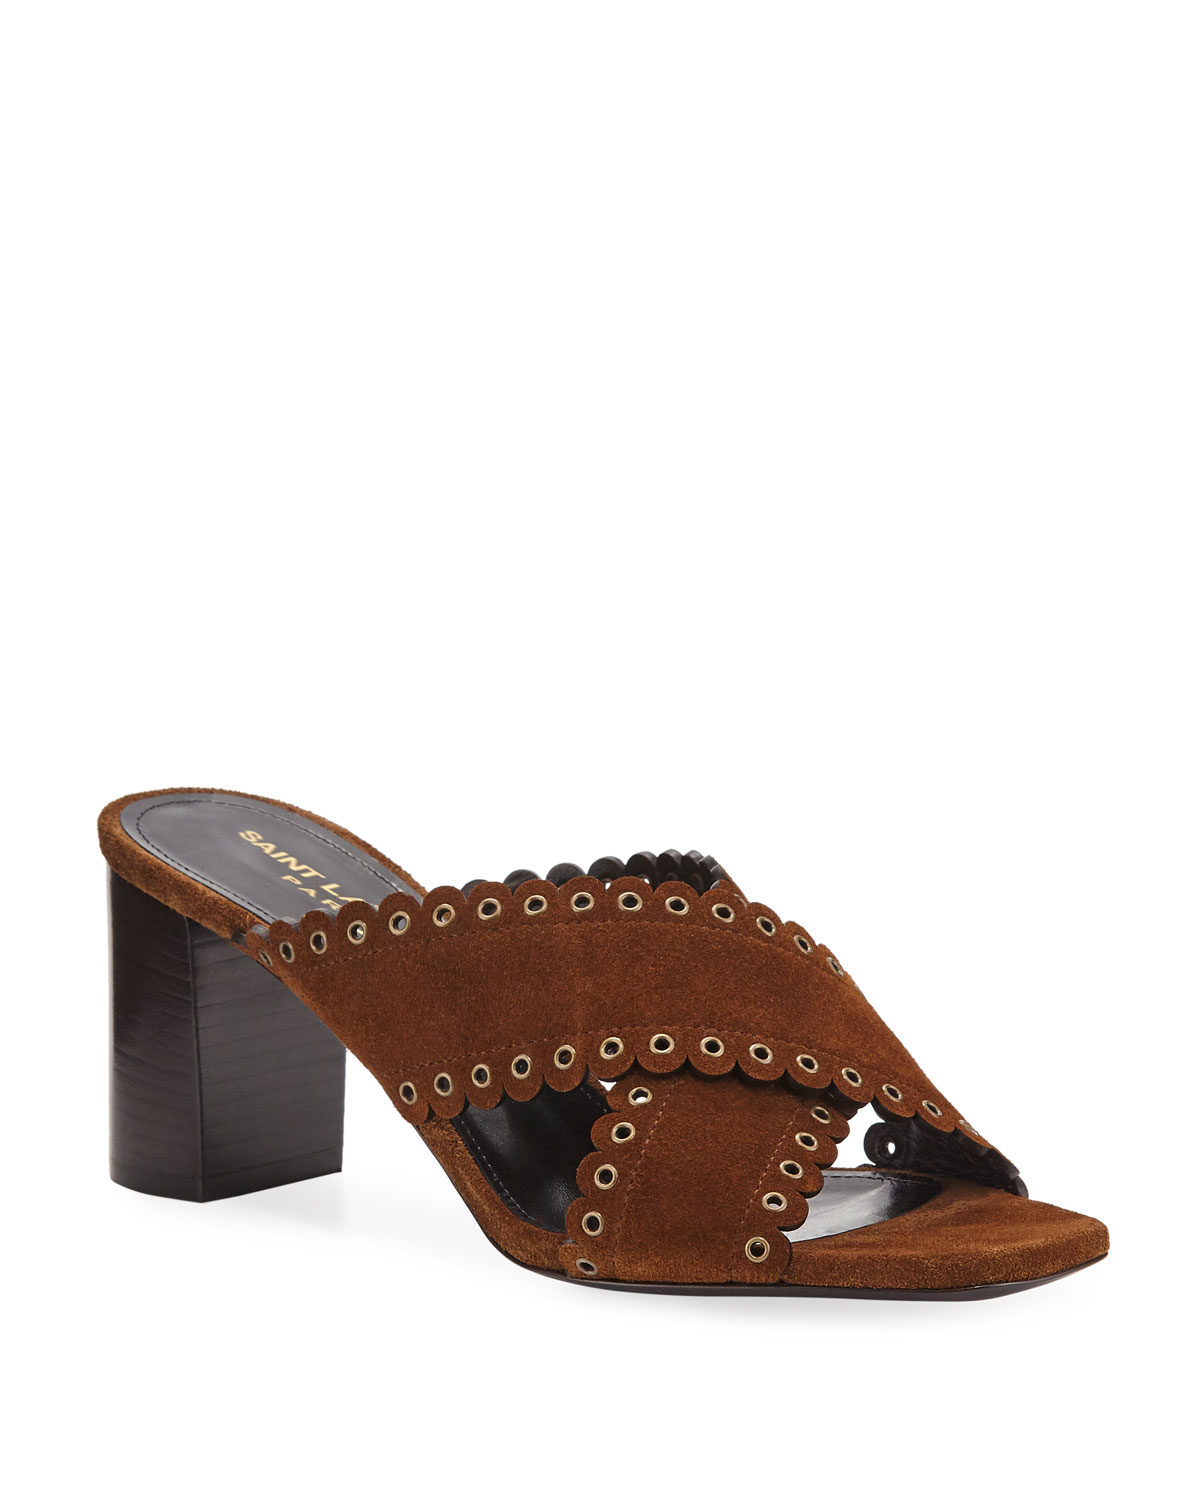 Loulou Suede Slide Sandals with Eyelets